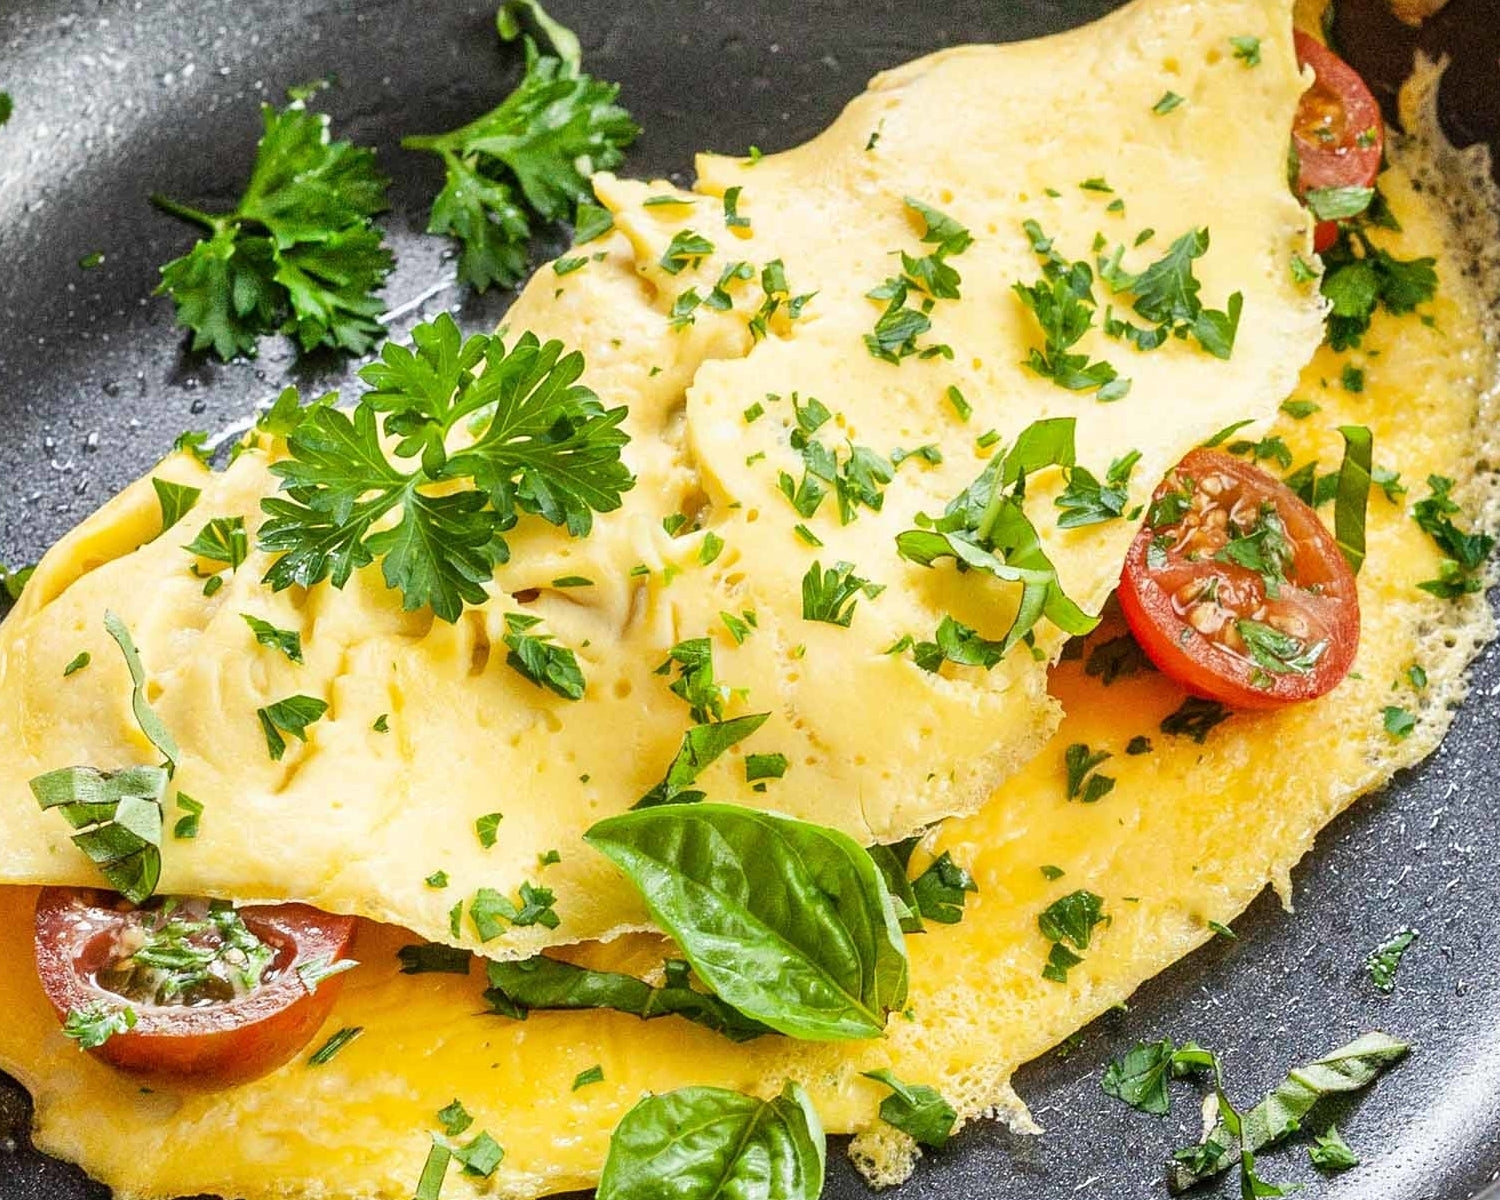 Herbal Infused Mediterranean Omelette